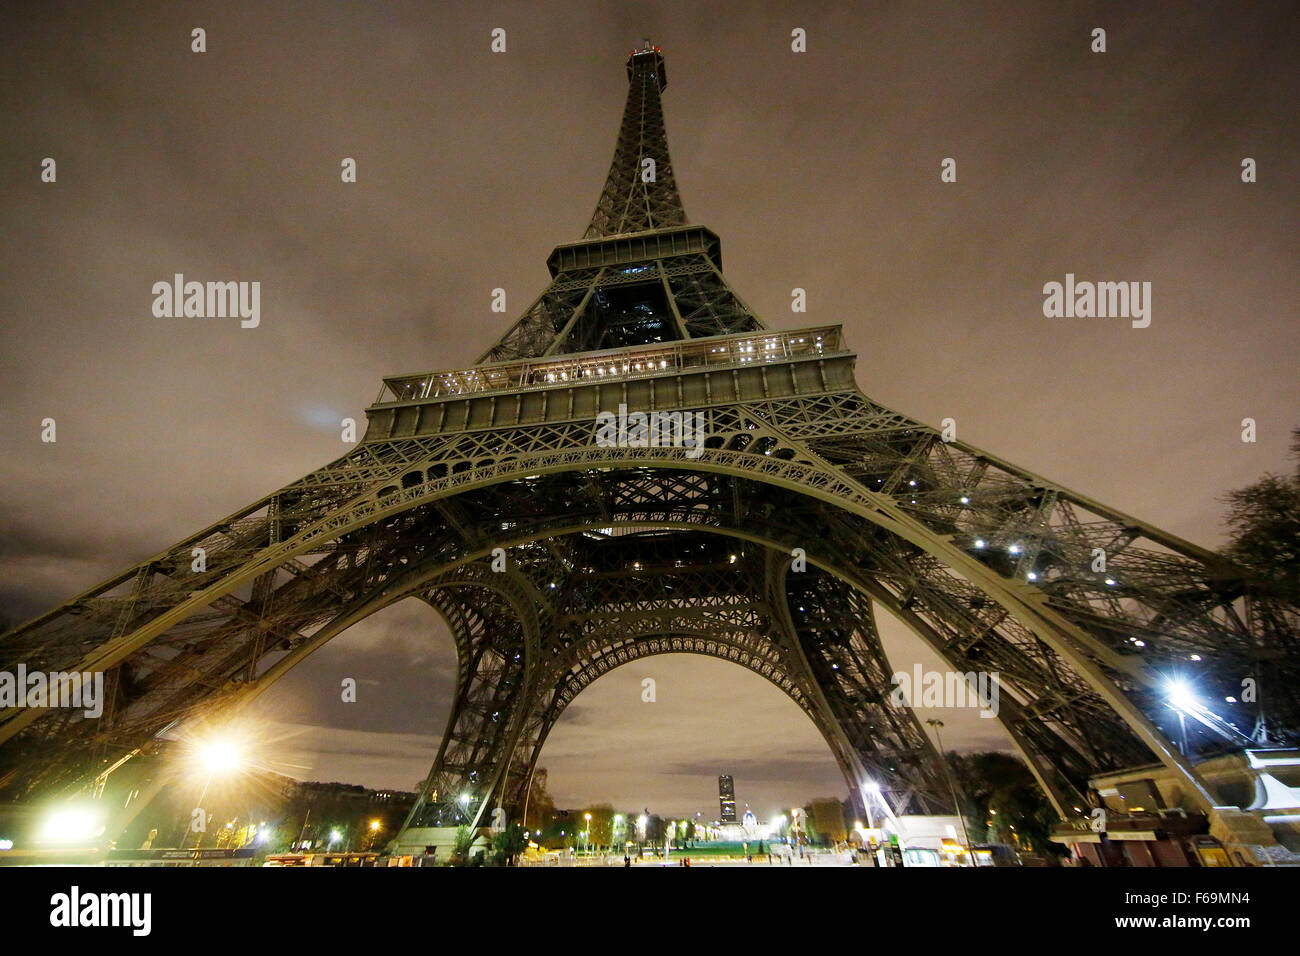 Paris, France. 14th Nov, 2015. A view of the unlit the Eifel tower in Paris, France, 14 November 2015. At least - Stock Image